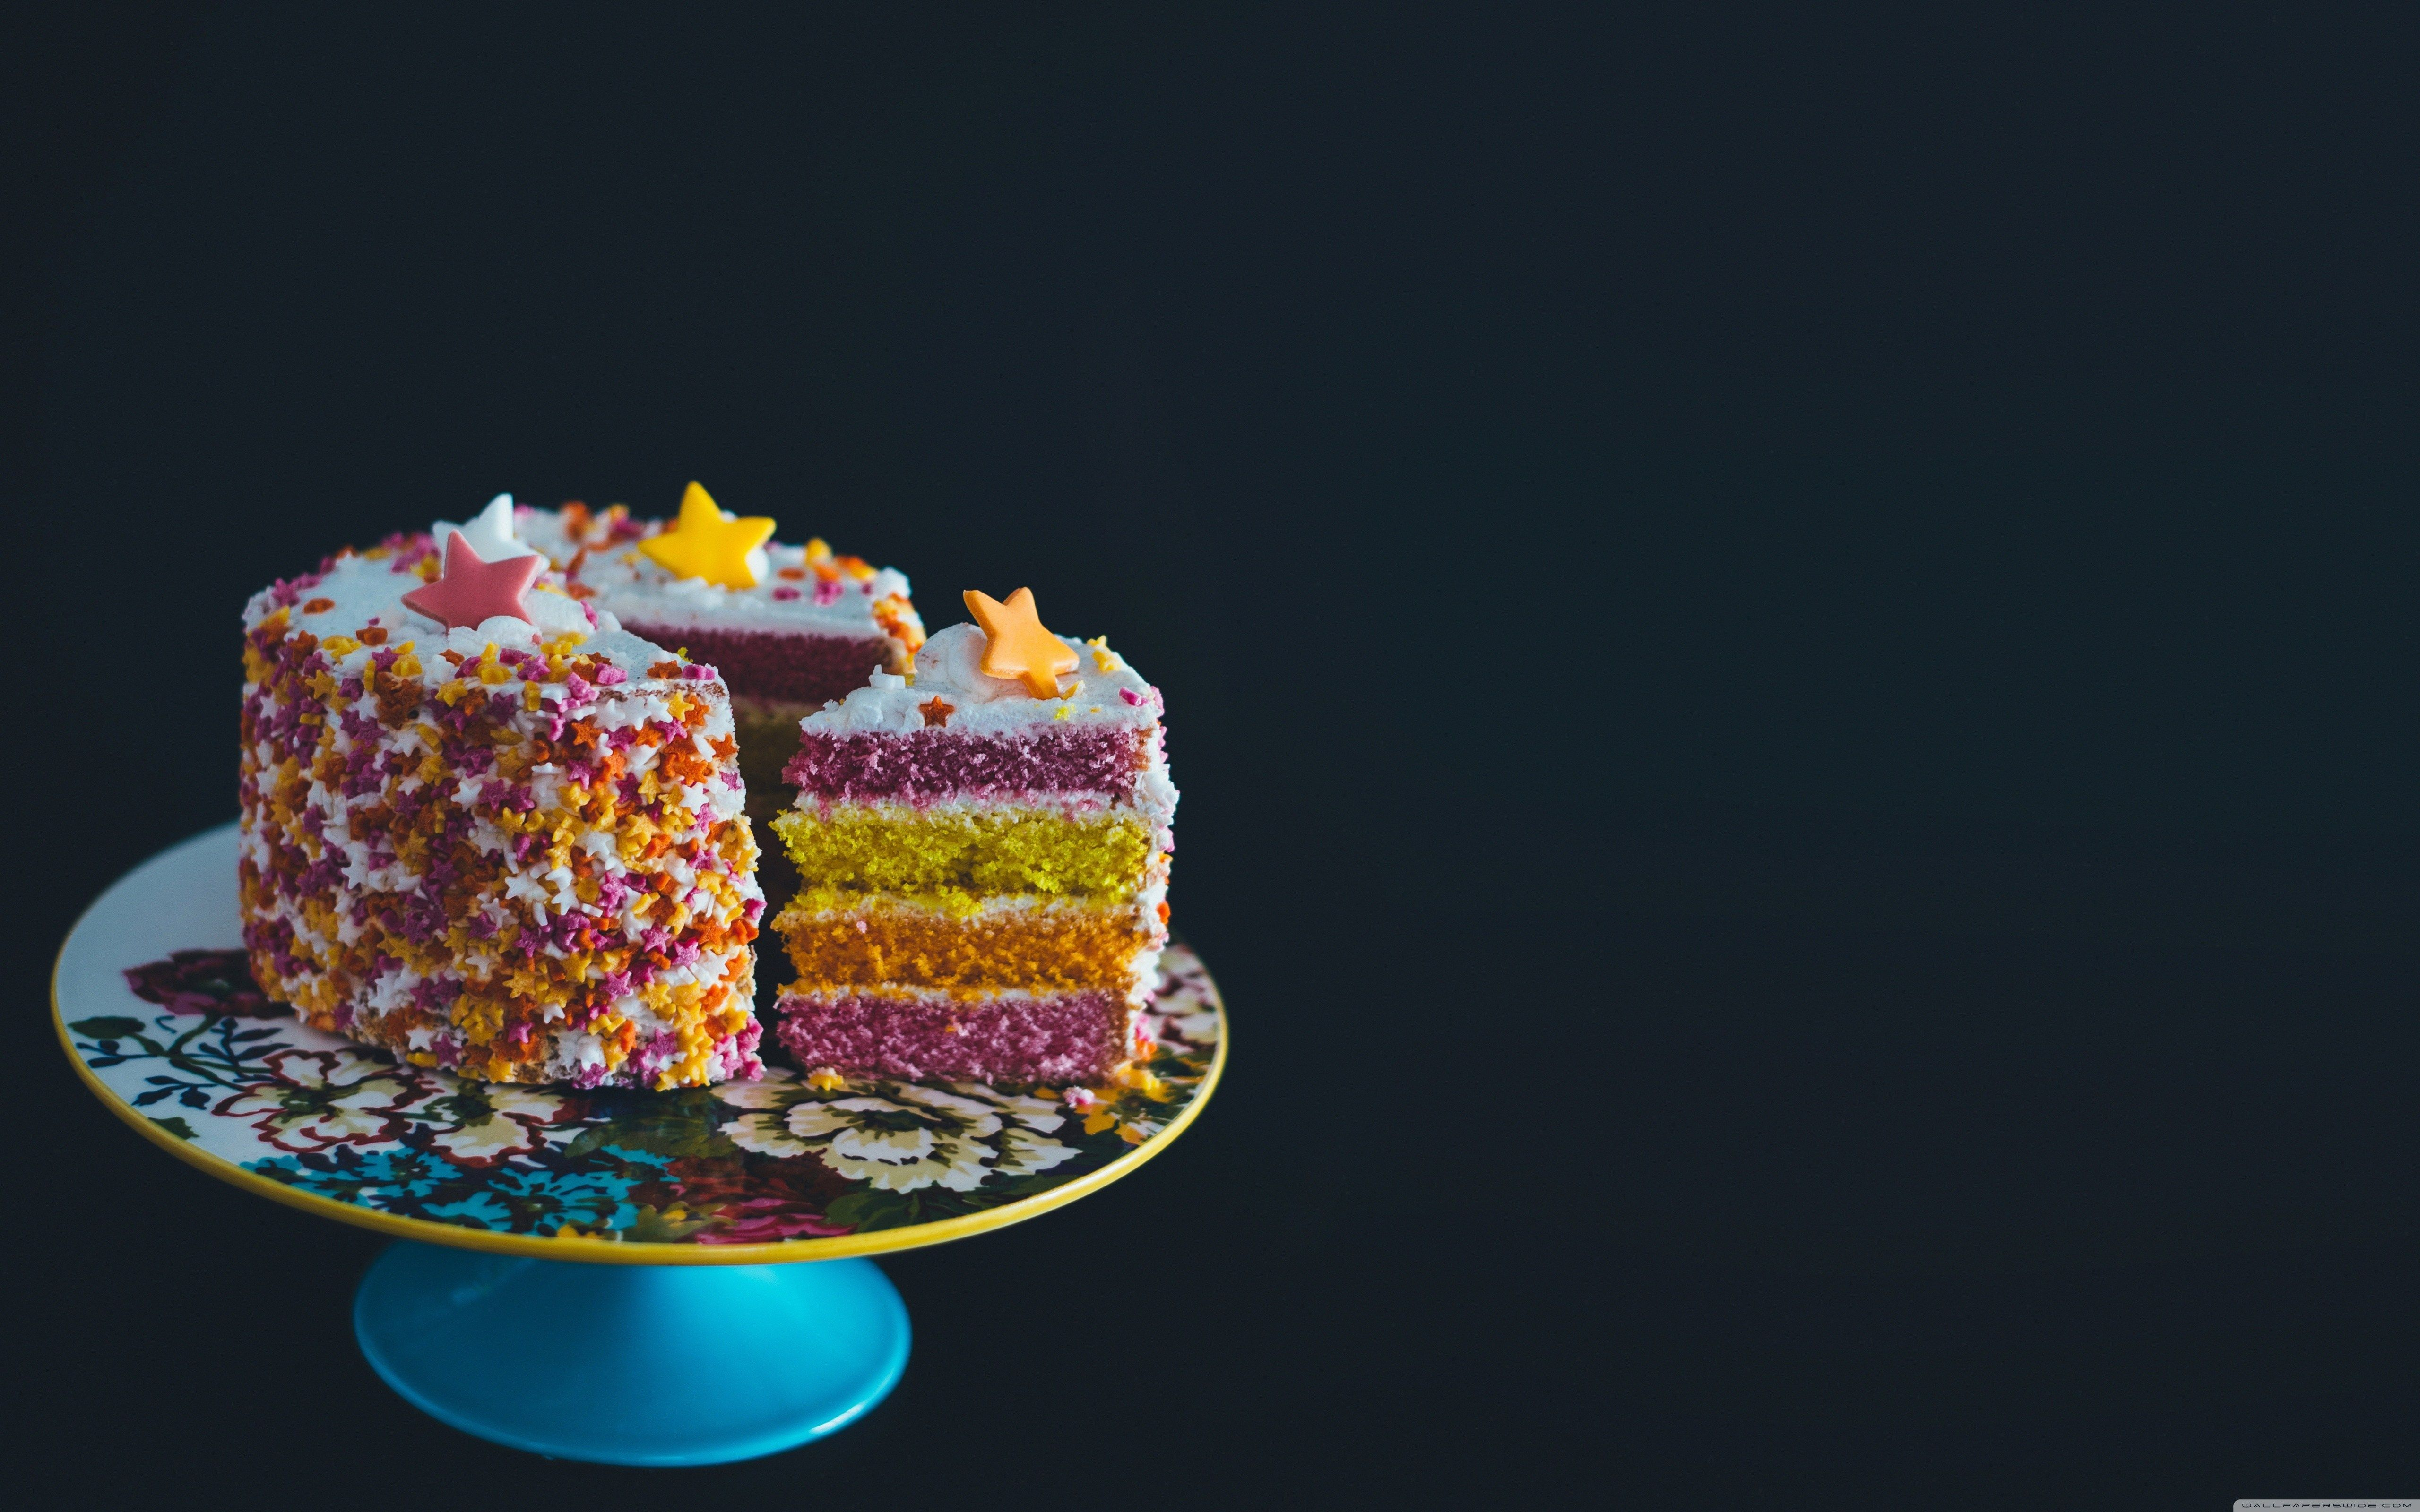 Birthday Cake Hd Wallpaper Colorful Birthday Cake 4k Hd Desktop Wallpaper For Wide Ultra Birthday Cake With Photo Colorful Birthday Cake Cake Wallpaper